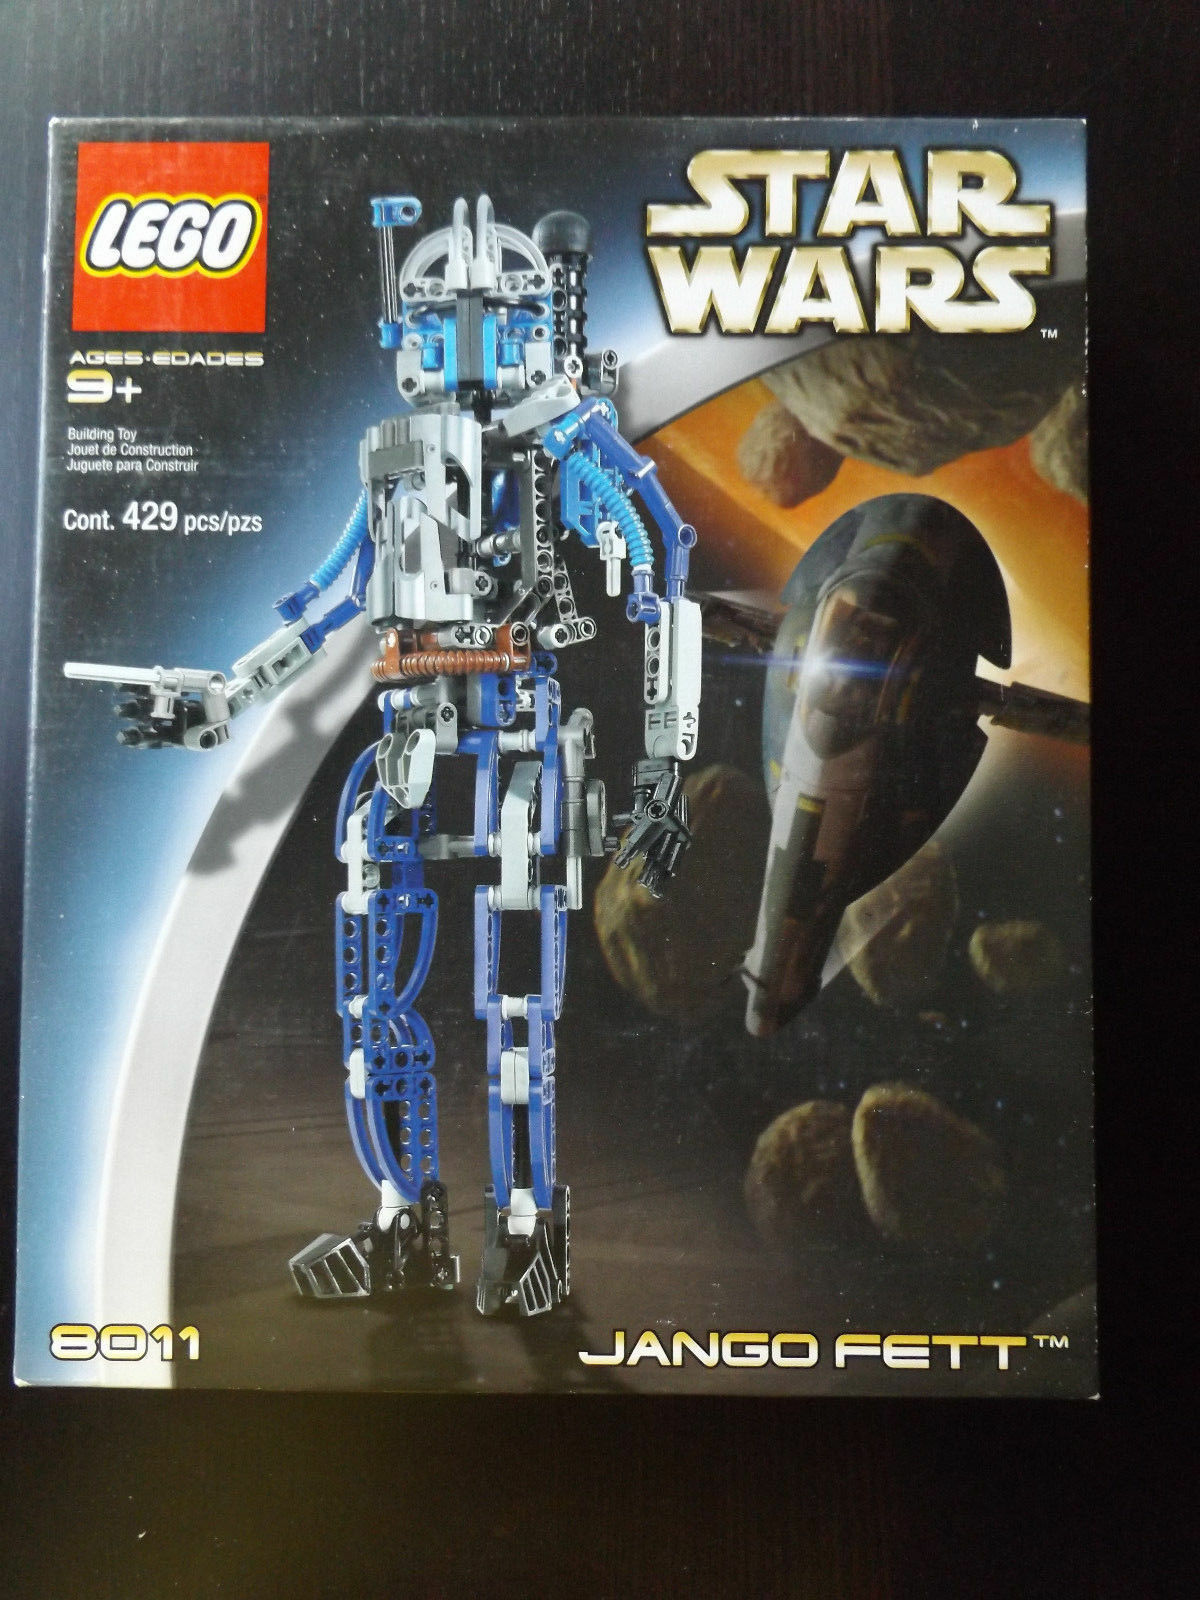 Lego Star Wars Technic Jango Fett  8011  Nuovo Sealed